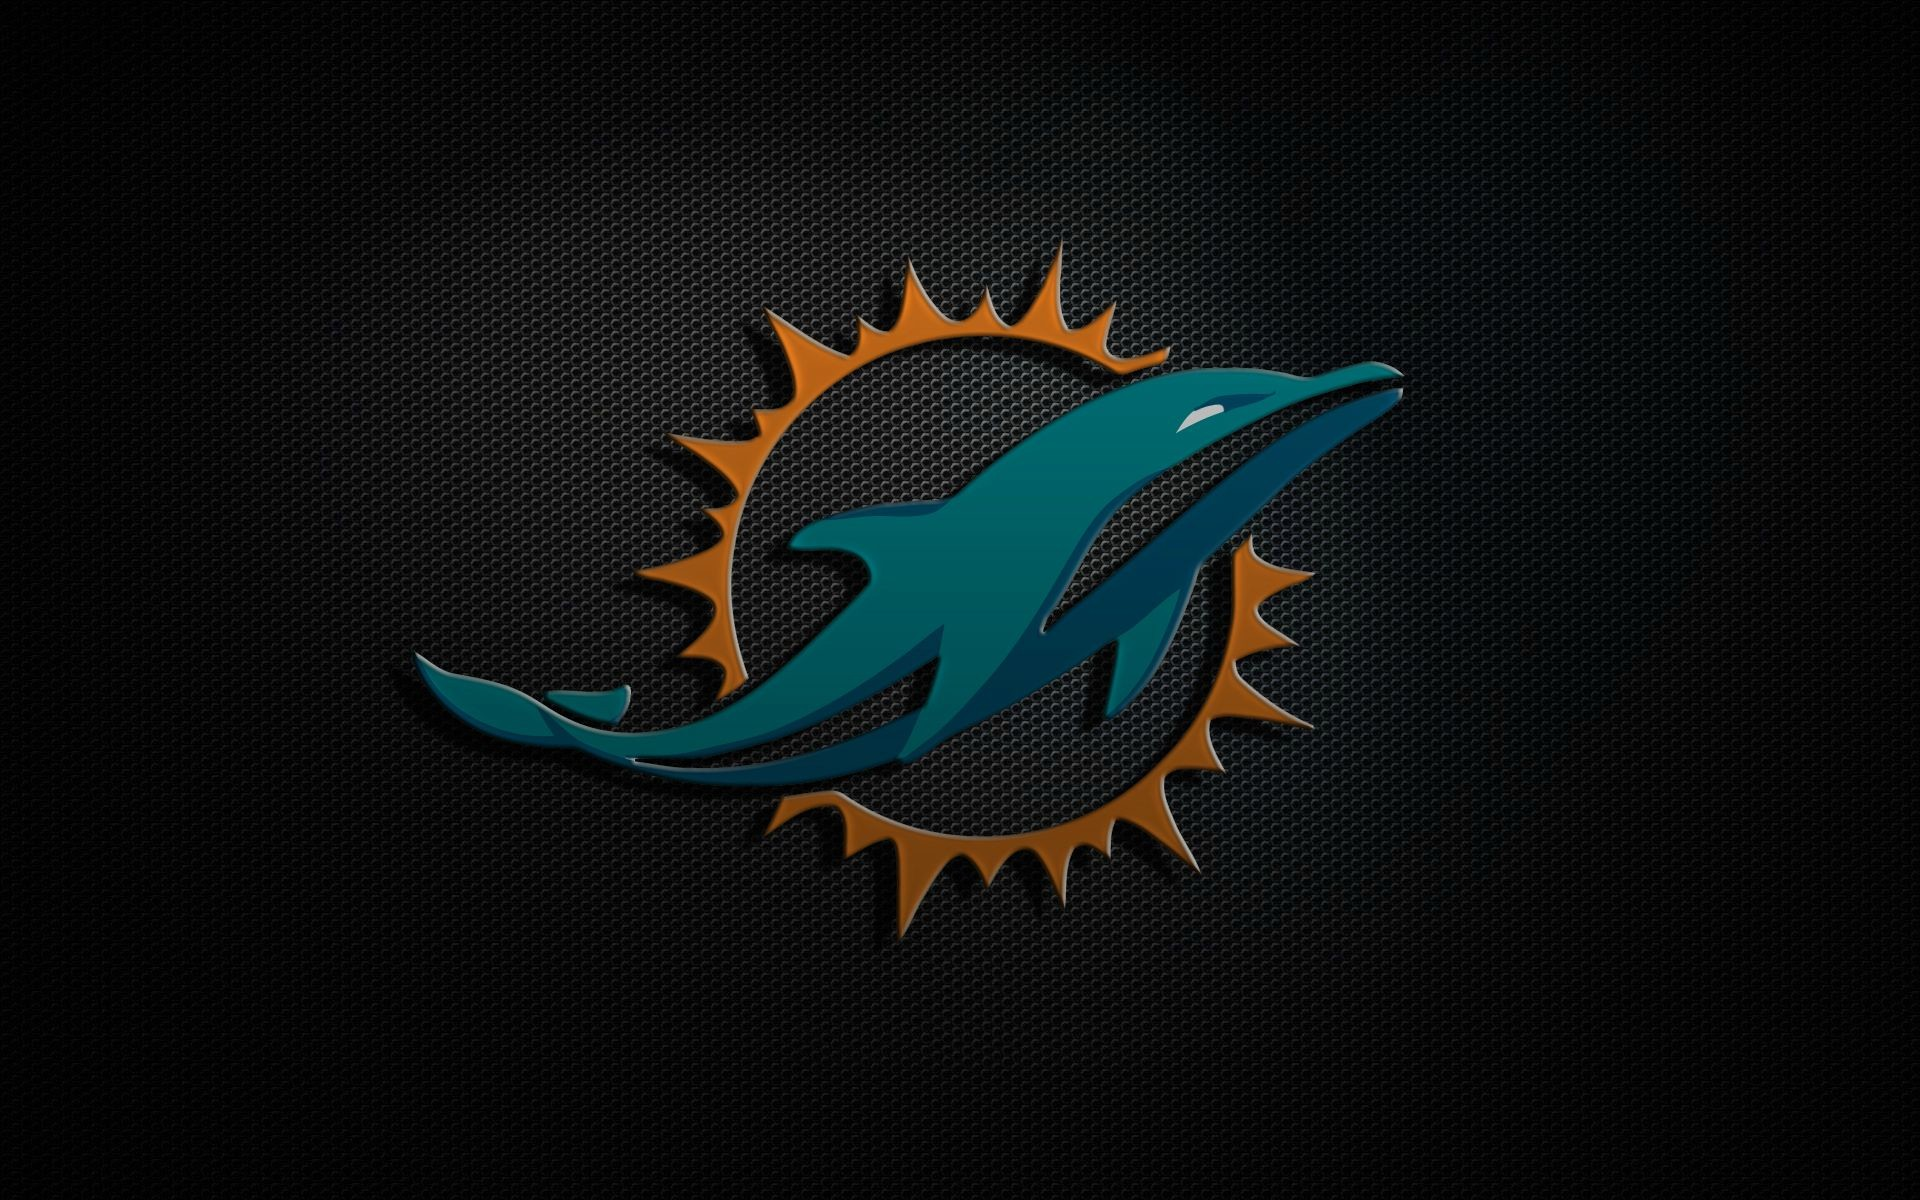 Miami Dolphins Wallpaper Screensavers 71 Images